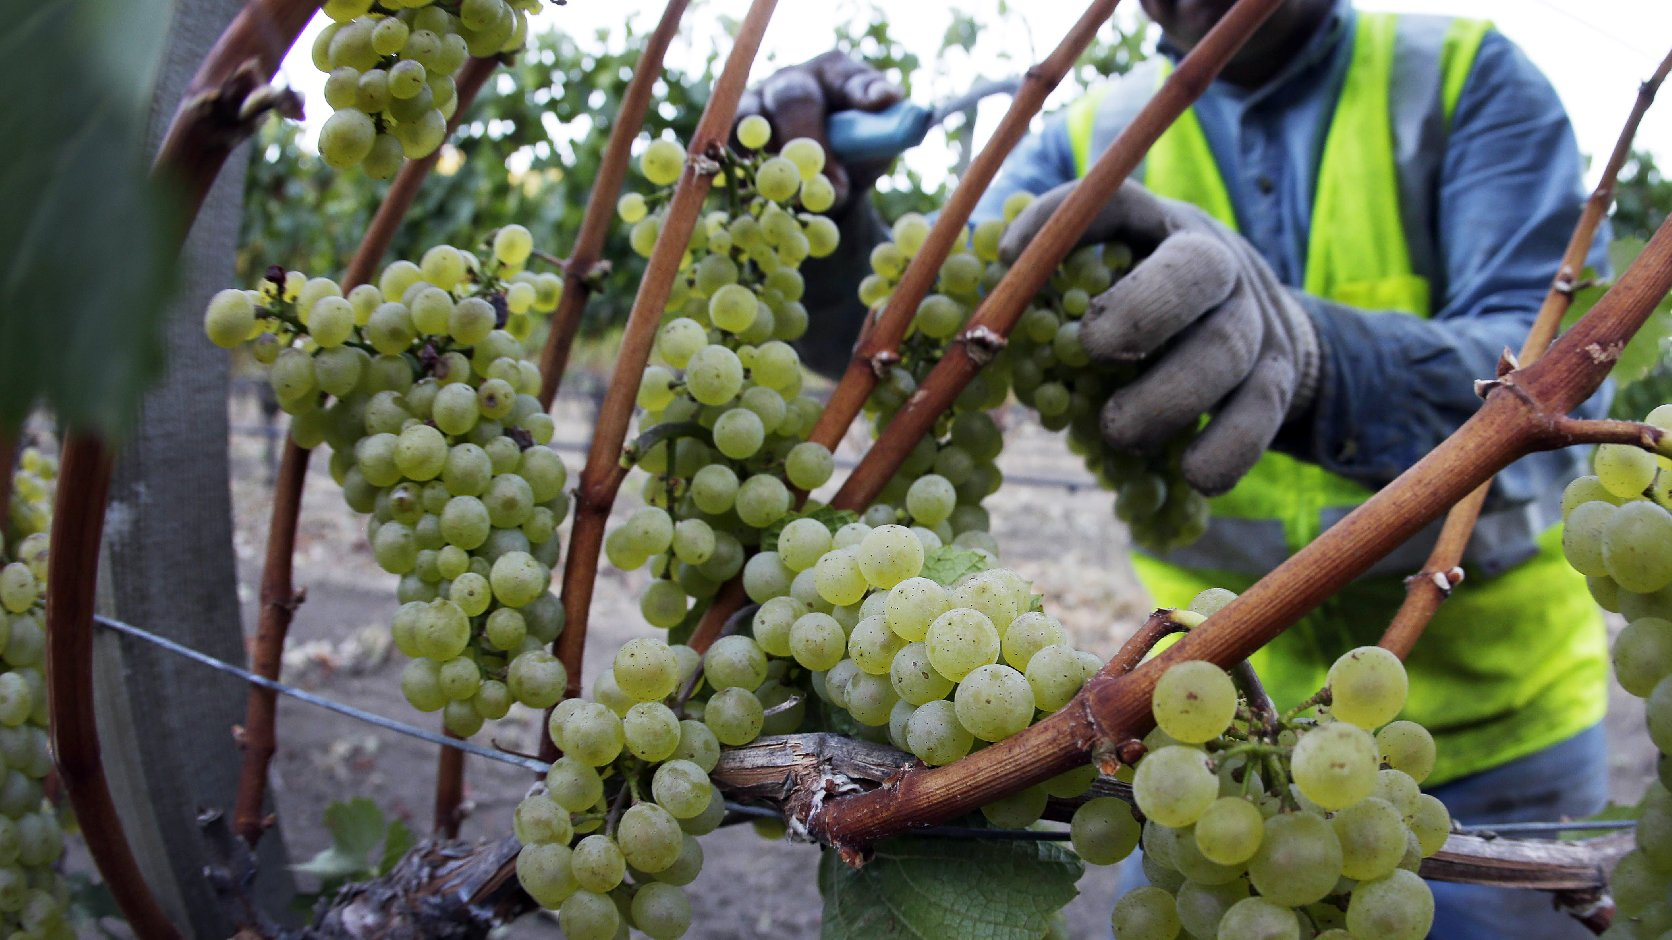 Chardonnay grapes are picked in the Stelling Vineyard at Far Niente winery Wednesday morning, Aug. 28, 2013 in Oakville, Calif. Photo: Eric Risberg/AP